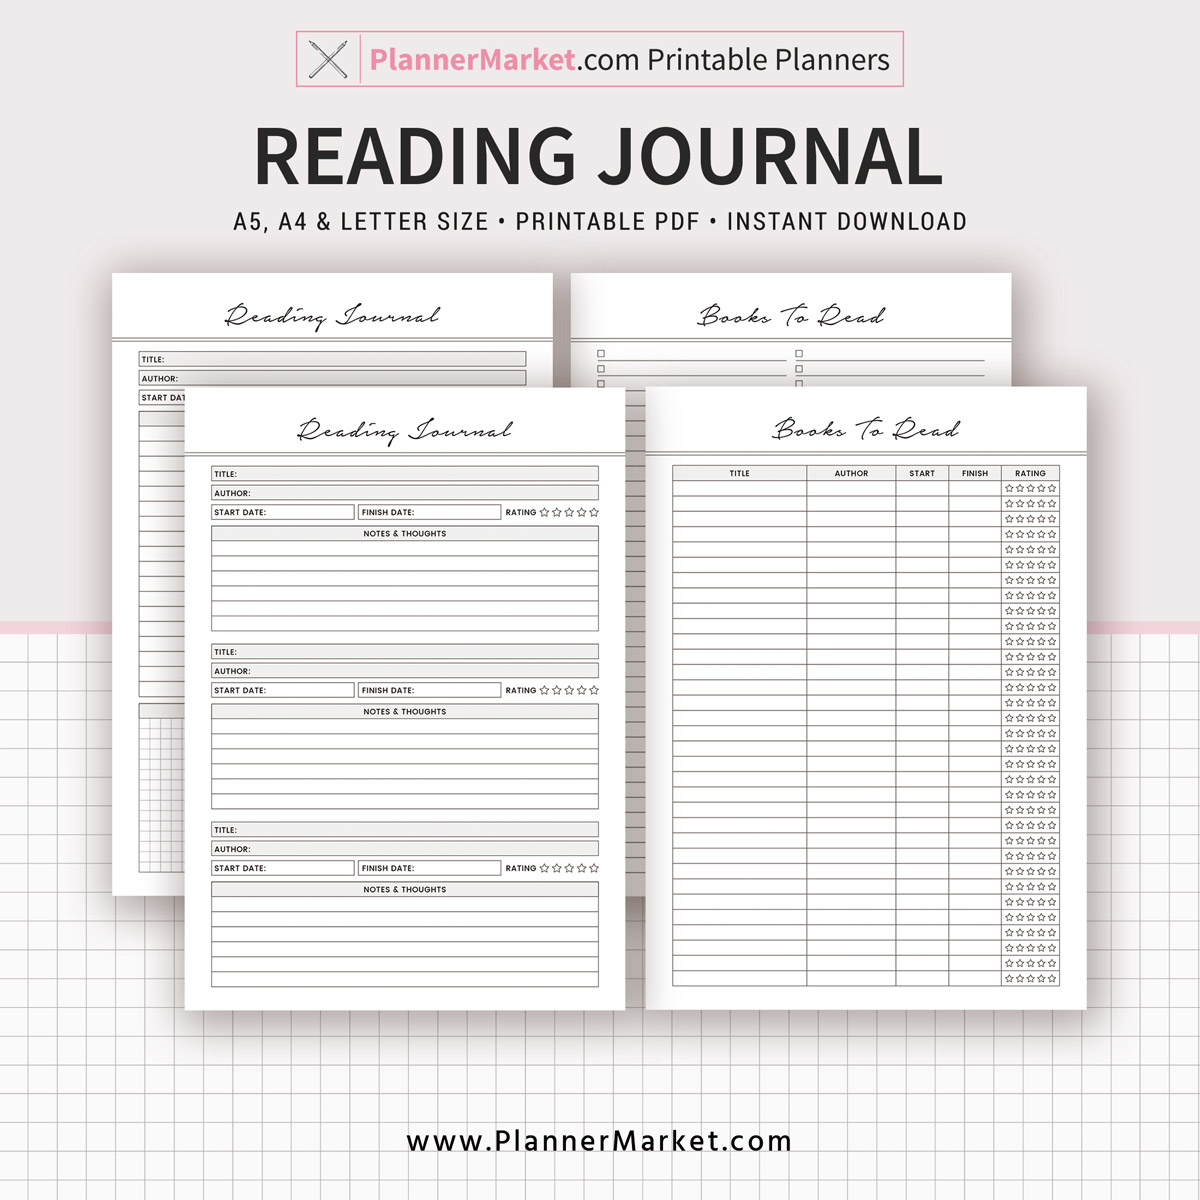 image about Books to Read Printable referred to as Reading through Magazine, Textbooks Towards Browse, 2019 Planner, A5, A4, Letter Dimensions, Planner Refill, Planner Binder, Prompt Down load